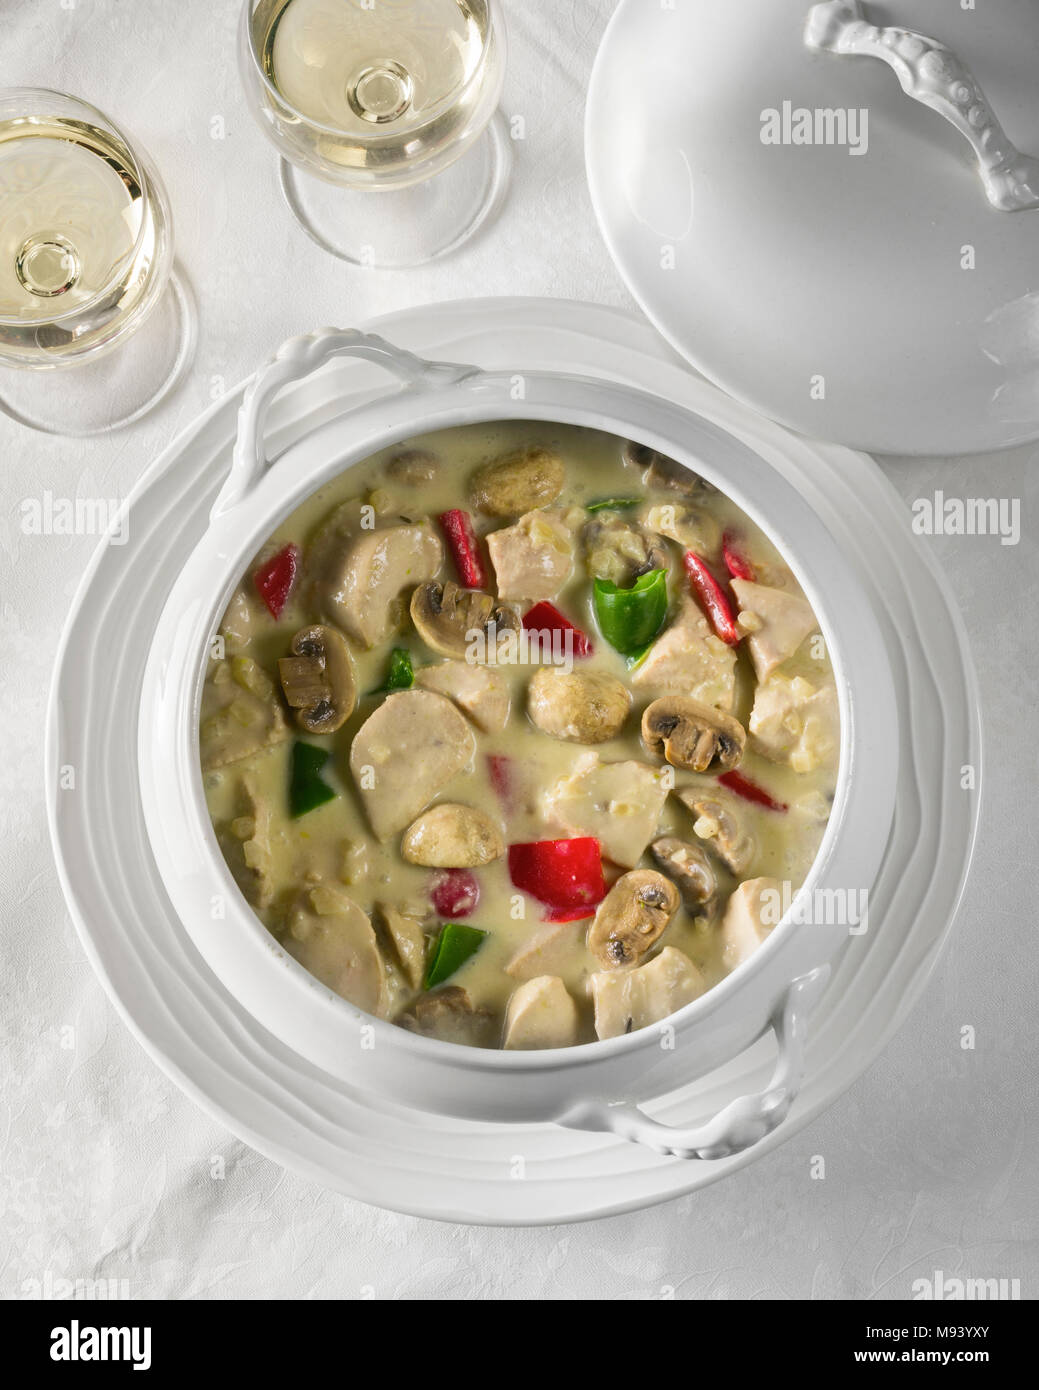 Chicken à la King. Chicken in cream sauce, with sherry, mushrooms and peppers. - Stock Image